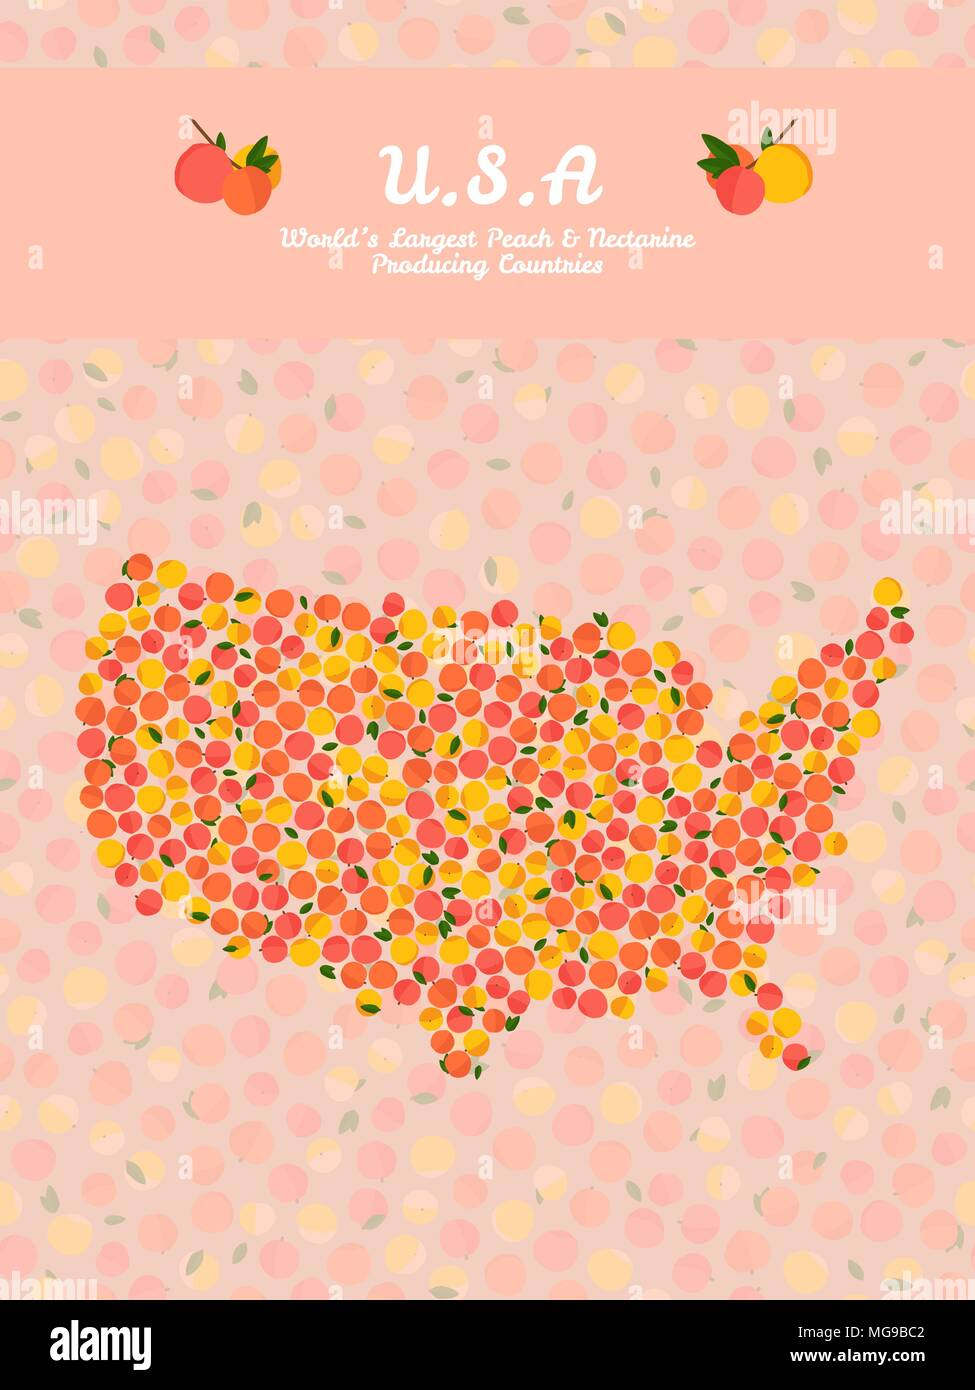 Usa map poster or card veggie postcard map of america made out usa map poster or card veggie postcard map of america made out of pink peaches fruitarian illustration worlds largest peach and nectarine produ gumiabroncs Images